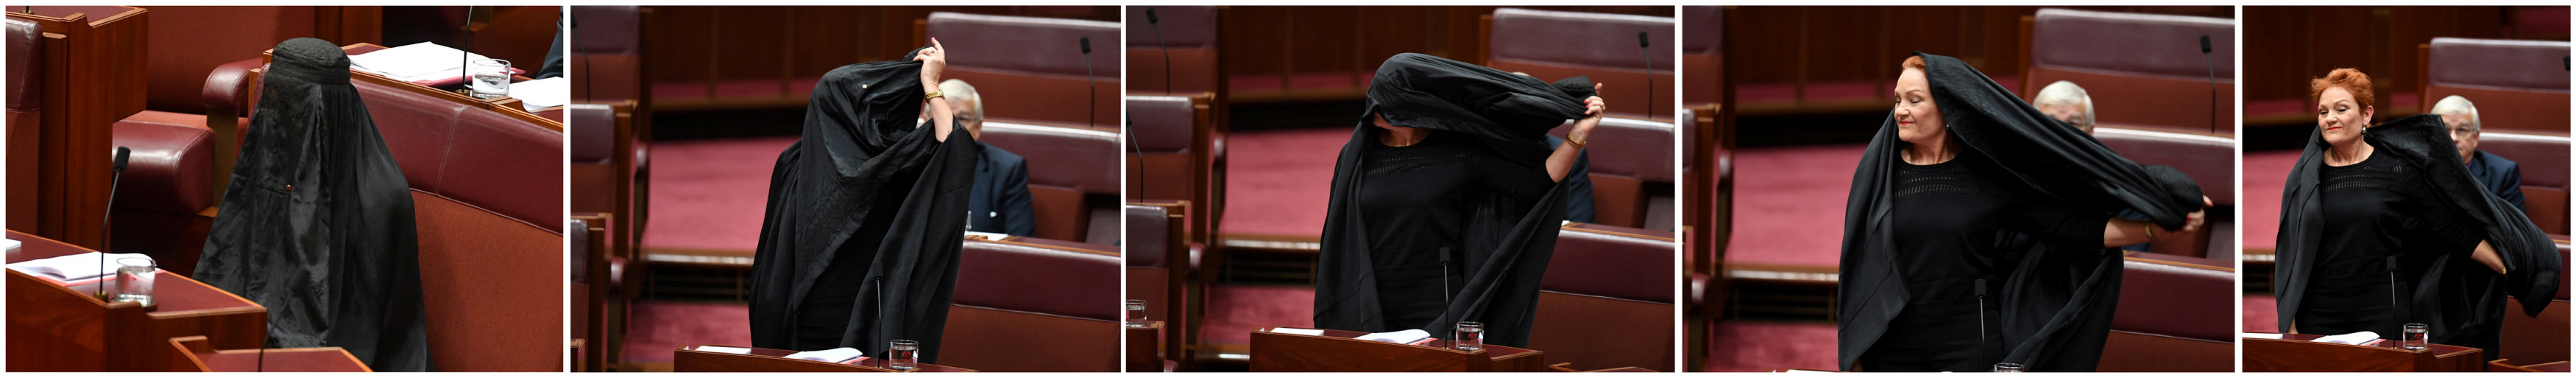 A combination photo shows Australian One Nation party leader, Senator Pauline Hanson wearing a burqa and taking it off in the Senate chamber at Parliament House in Canberra, Australia, August 17, 2017.  (AAP/Mick Tsikas/via REUTERS)